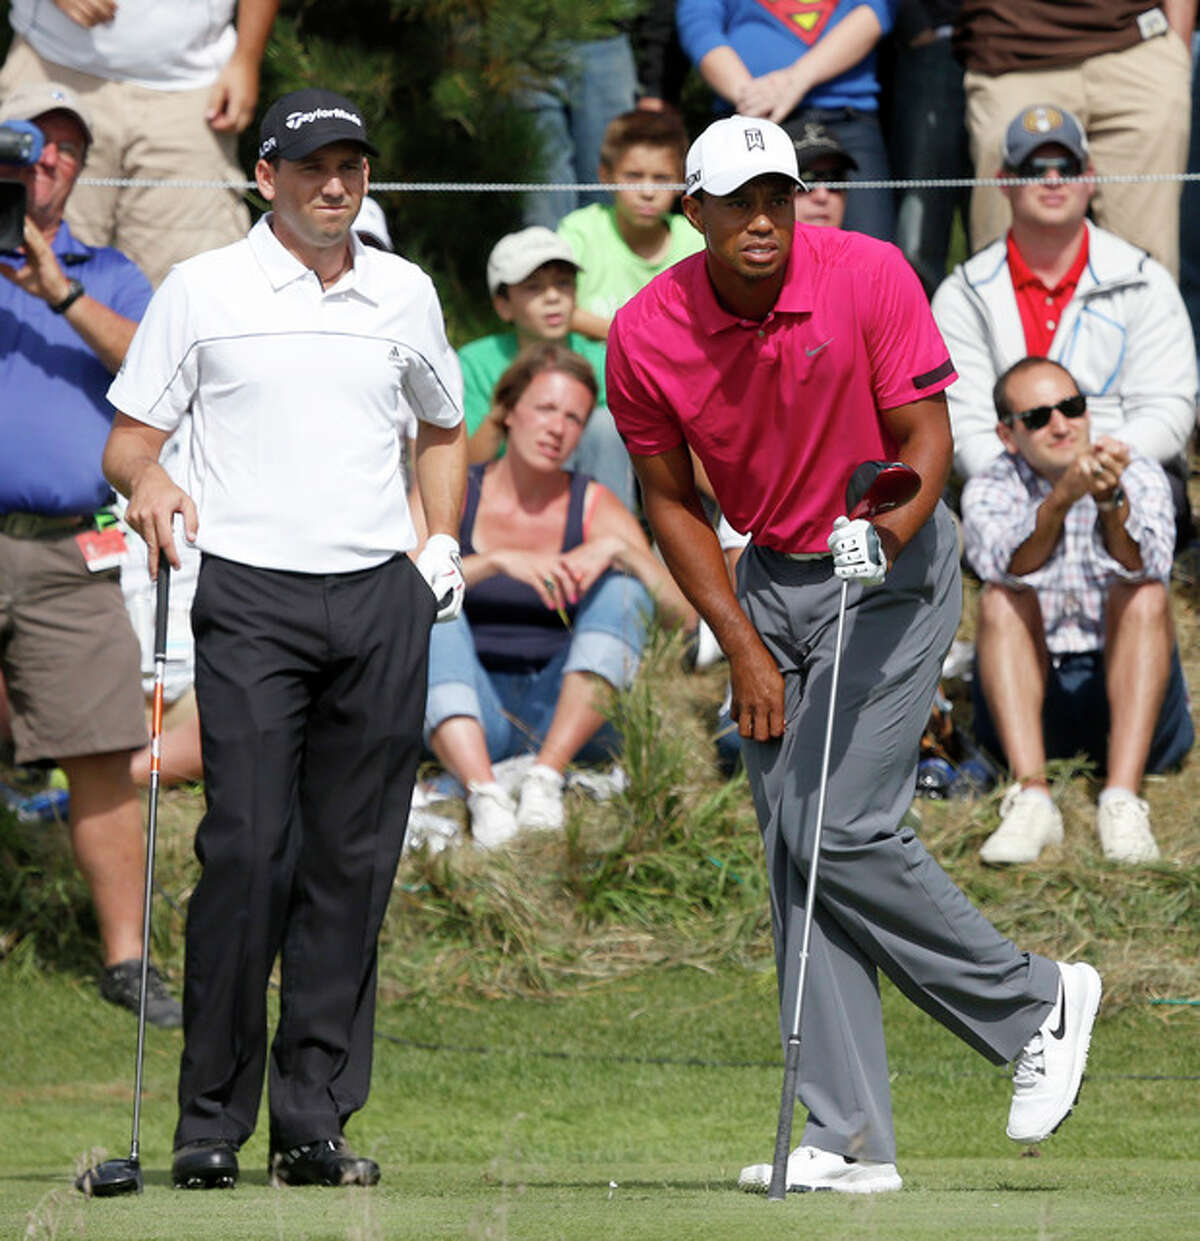 Sergio Garcia, left, and Tiger Woods watch Wood's tee shot on the 14th hole during the third round of the BMW Championship golf tournament at Conway Farms Golf Club in Lake Forest, Ill., Saturday, Sept. 14, 2013. (AP Photo/Charles Rex Arbogast)